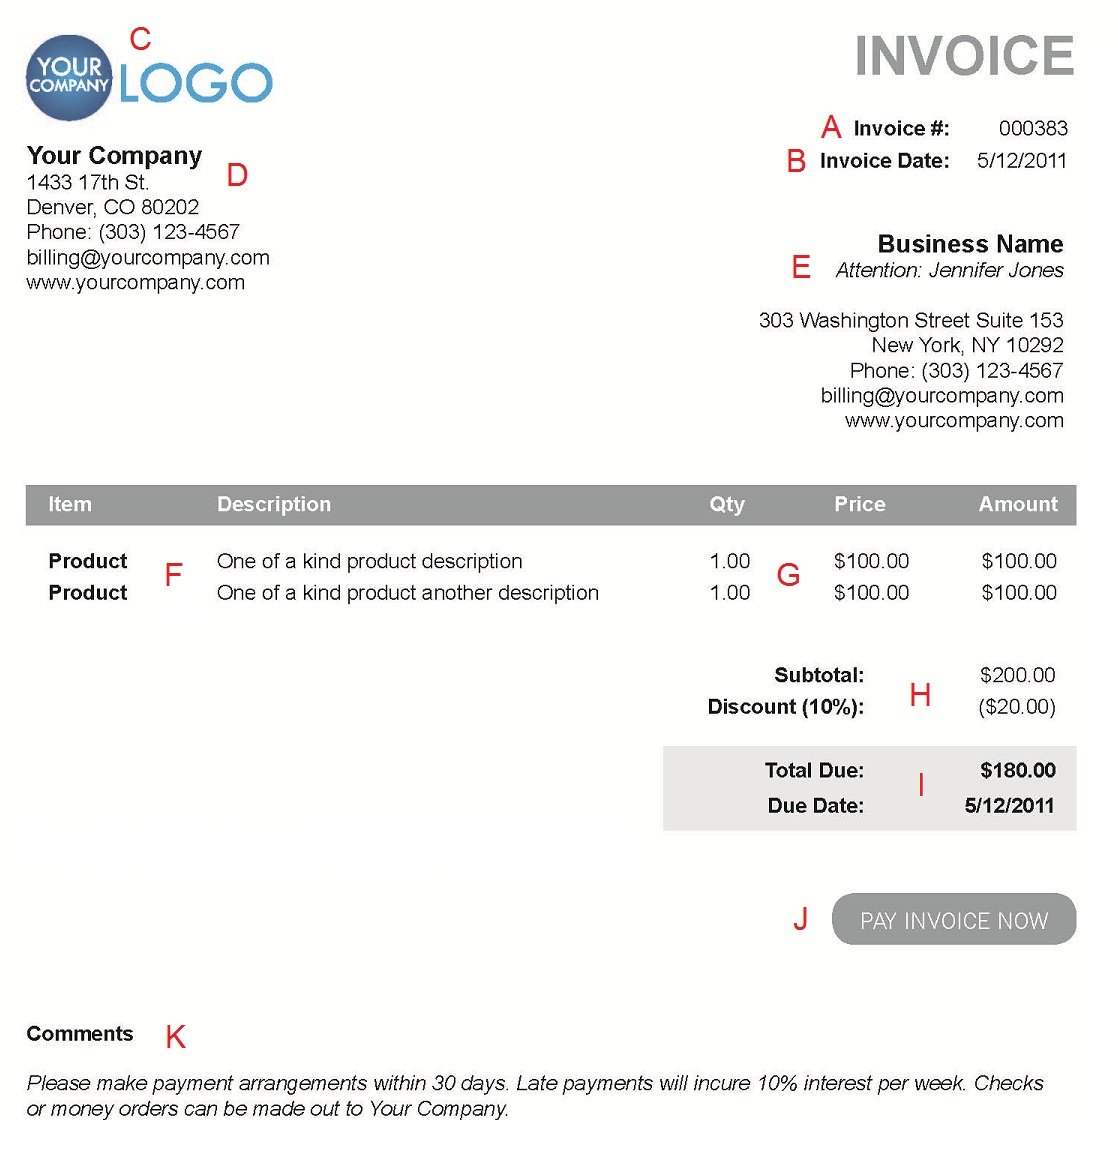 Coolmathgamesus  Personable The  Different Sections Of An Electronic Payment Invoice With Fair A  With Captivating Breakfast Receipt Also Blank Hotel Receipt In Addition Till Receipt Printer And Download Rent Receipt Format As Well As Transmittal Receipt Additionally House Rental Receipt Template From Paysimplecom With Coolmathgamesus  Fair The  Different Sections Of An Electronic Payment Invoice With Captivating A  And Personable Breakfast Receipt Also Blank Hotel Receipt In Addition Till Receipt Printer From Paysimplecom